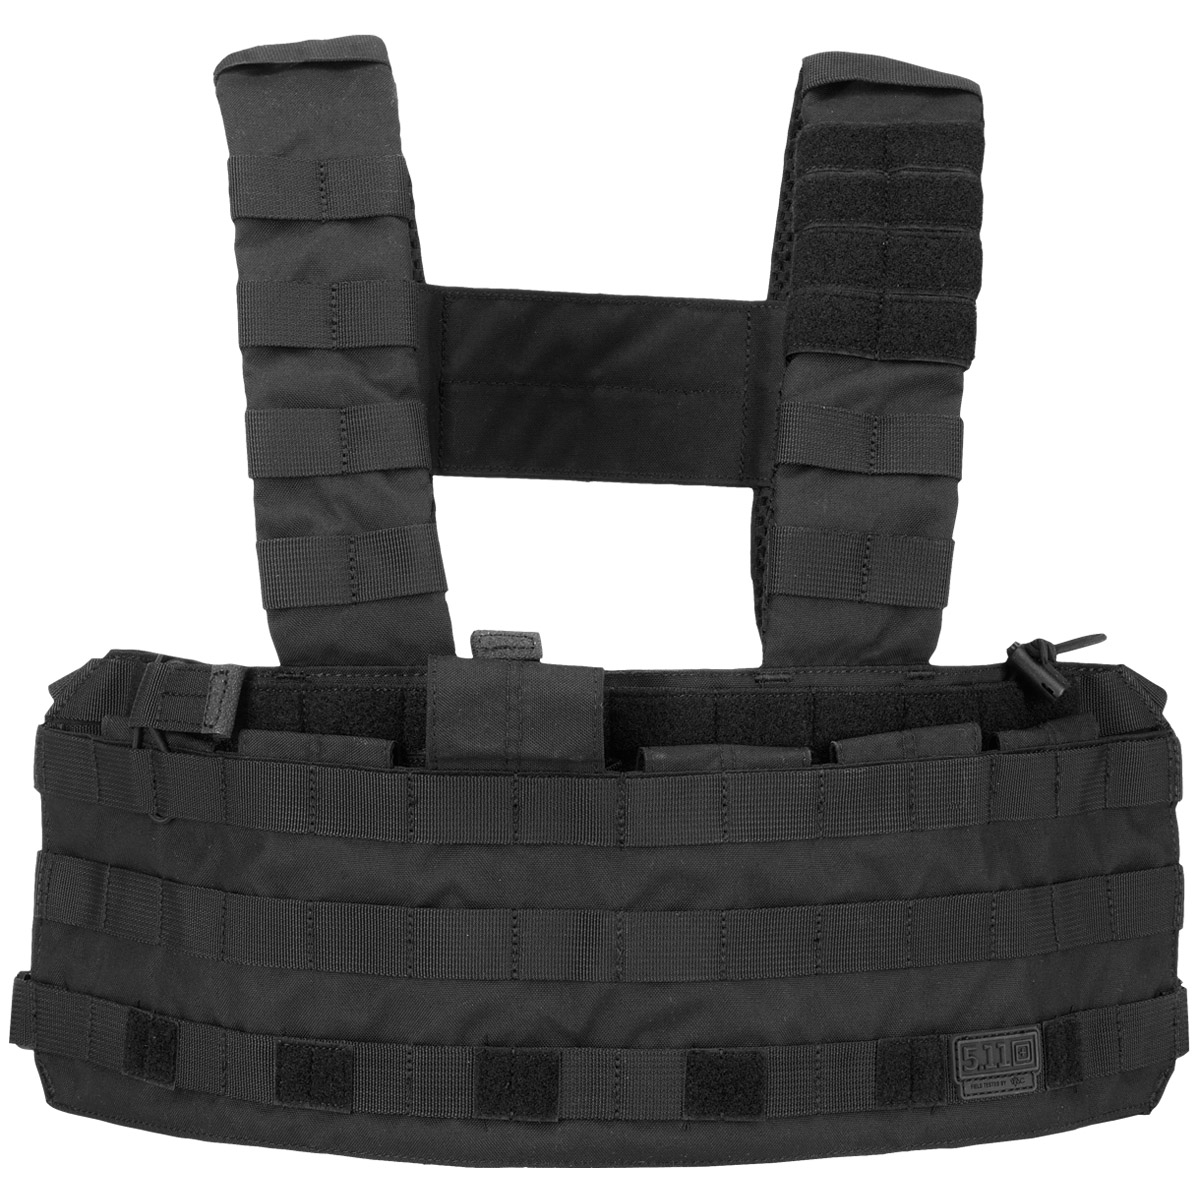 5.11 ARMY COMBAT TACTEC CHEST RIG MOLLE SYSTEM MAG CARRIER AIRSOFT WEBBING BLACK